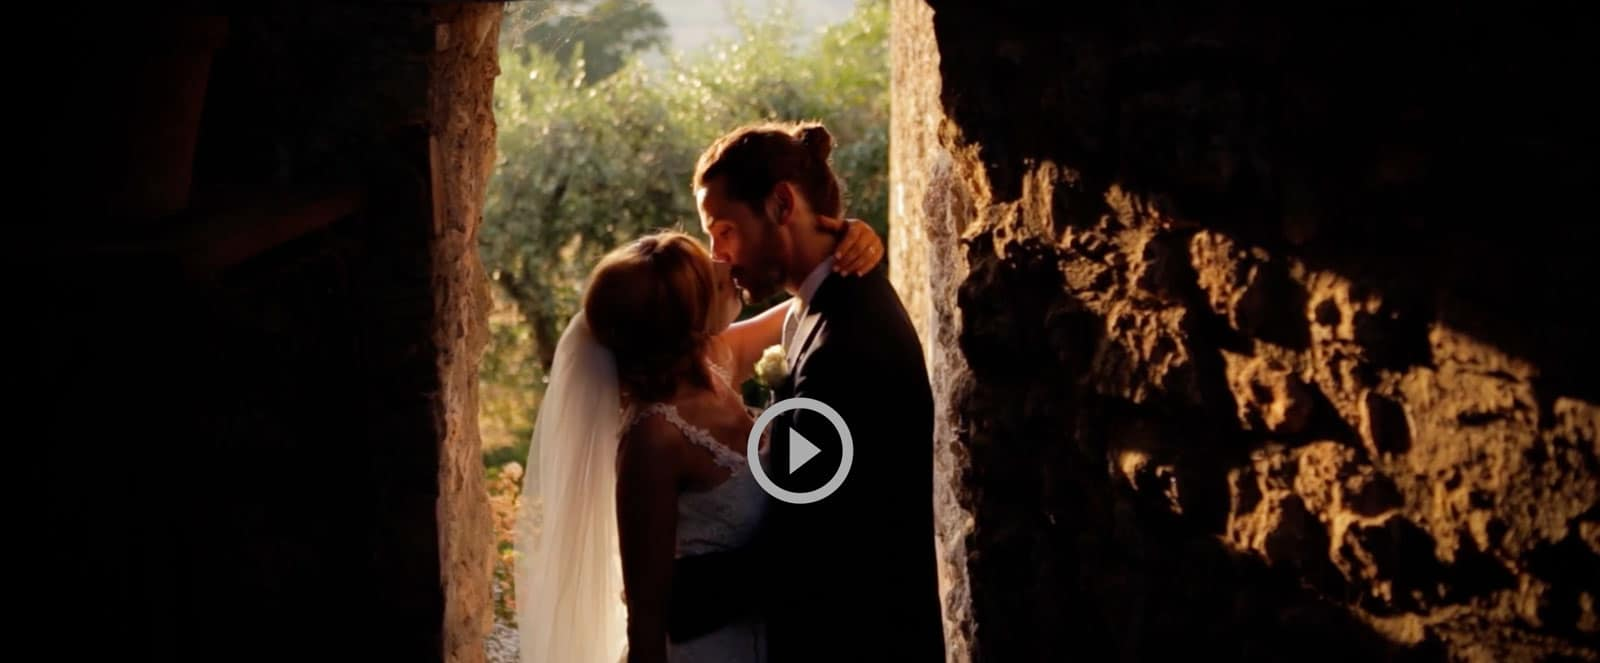 cinemarry-video-matrimonio-perugia